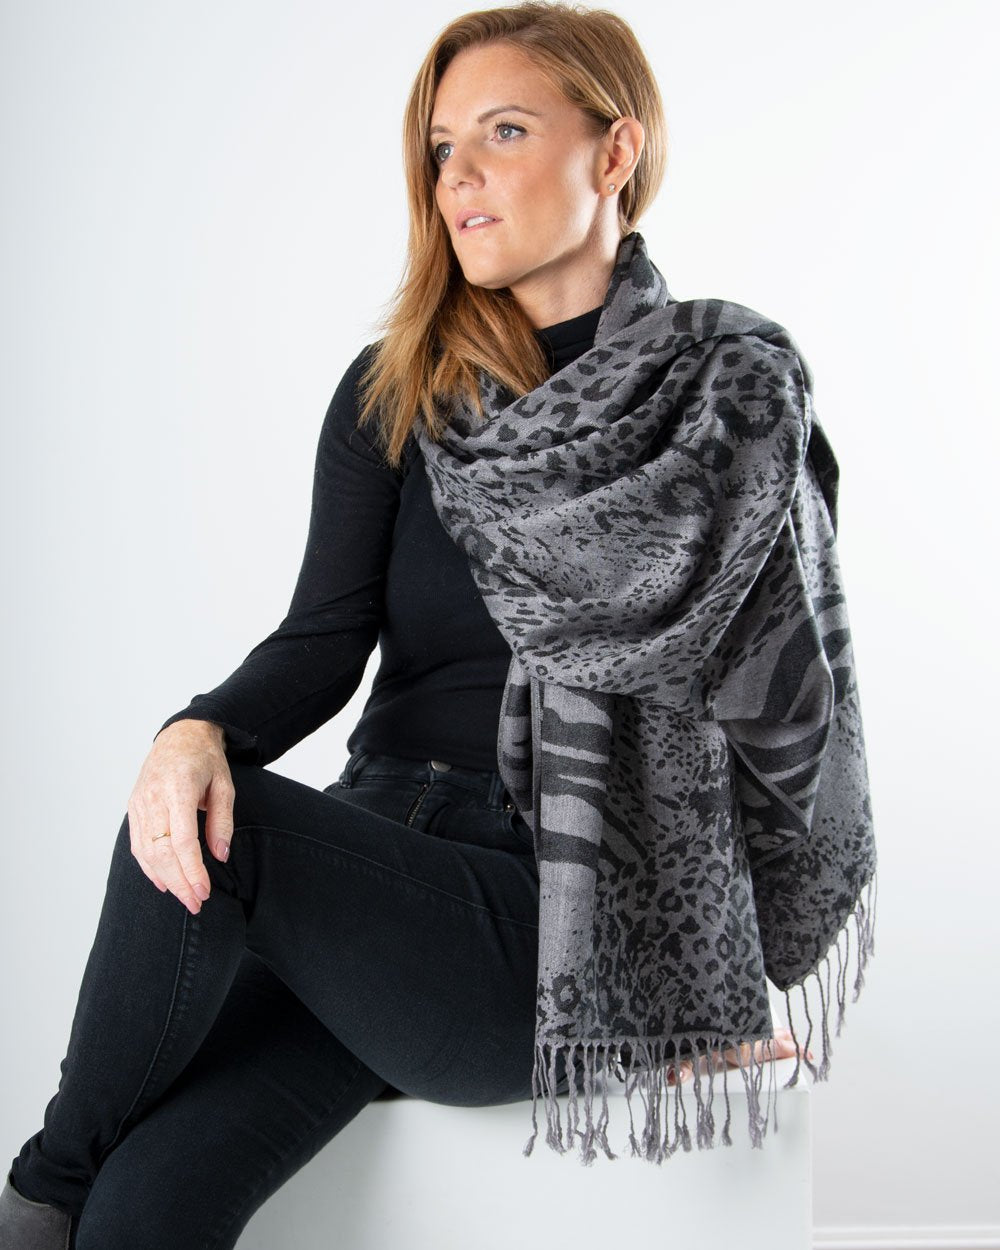 an image showing a silver and black animal print patterned pashmina